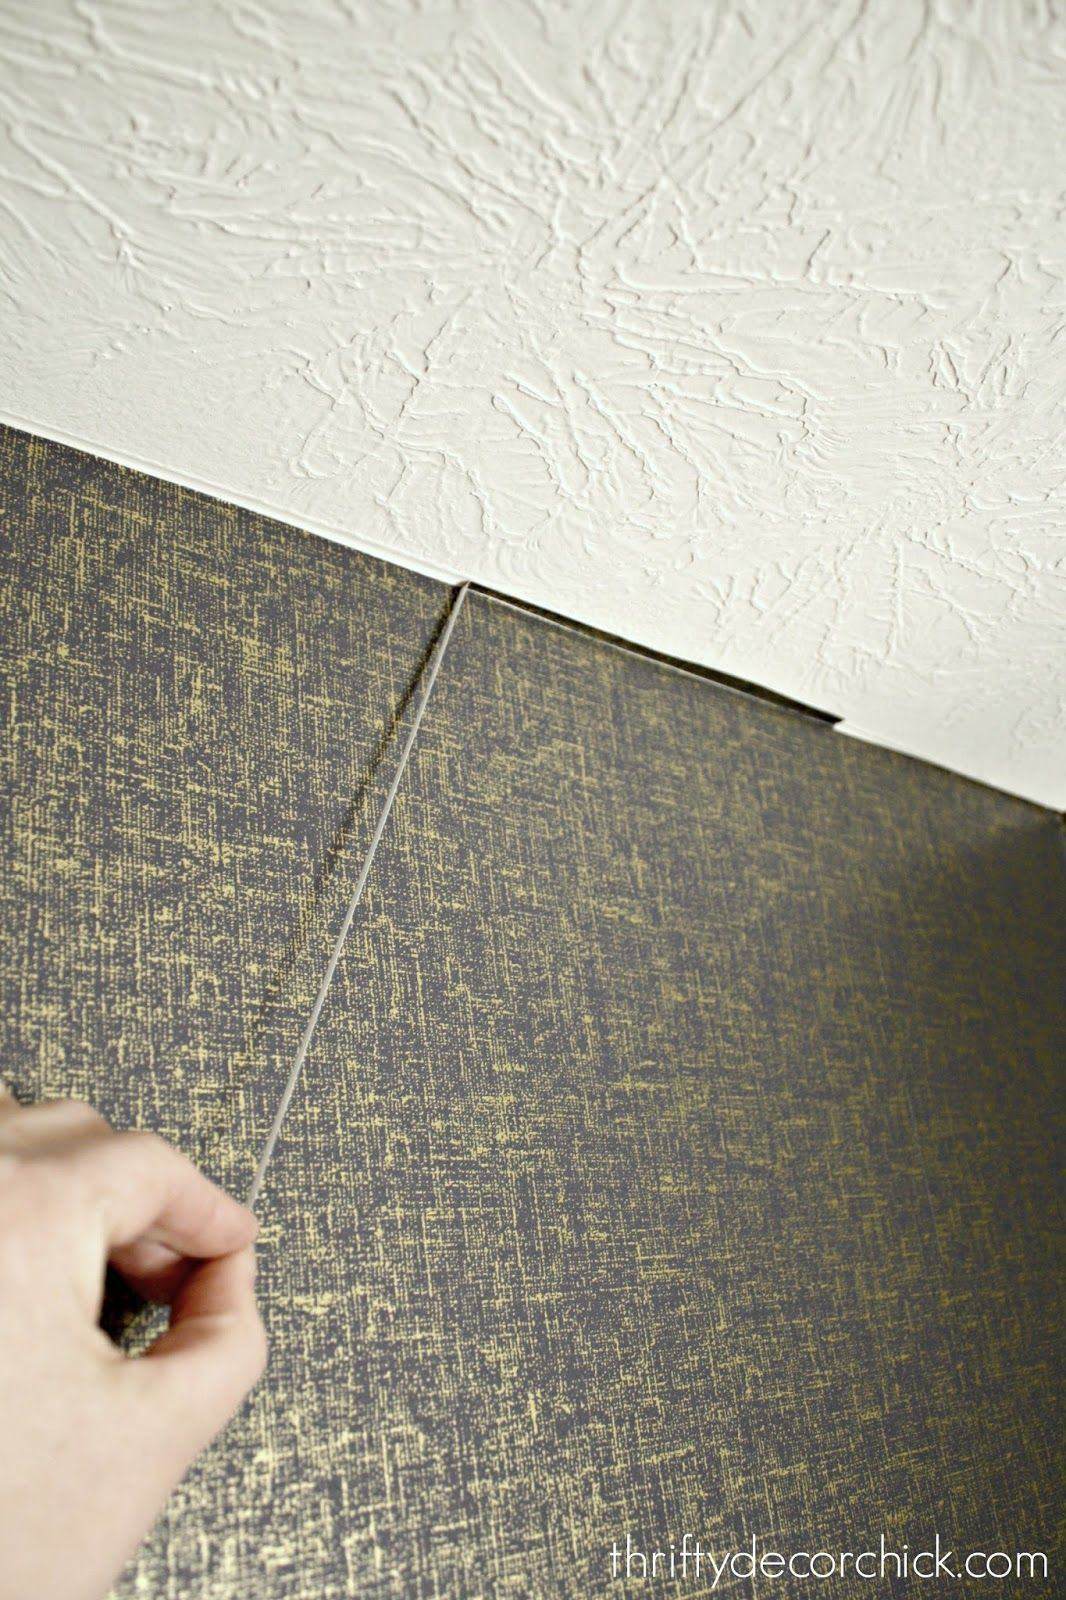 How To Install Peel And Stick Wallpaper Peel And Stick Wallpaper Wallpaper Edge How To Install Wallpaper